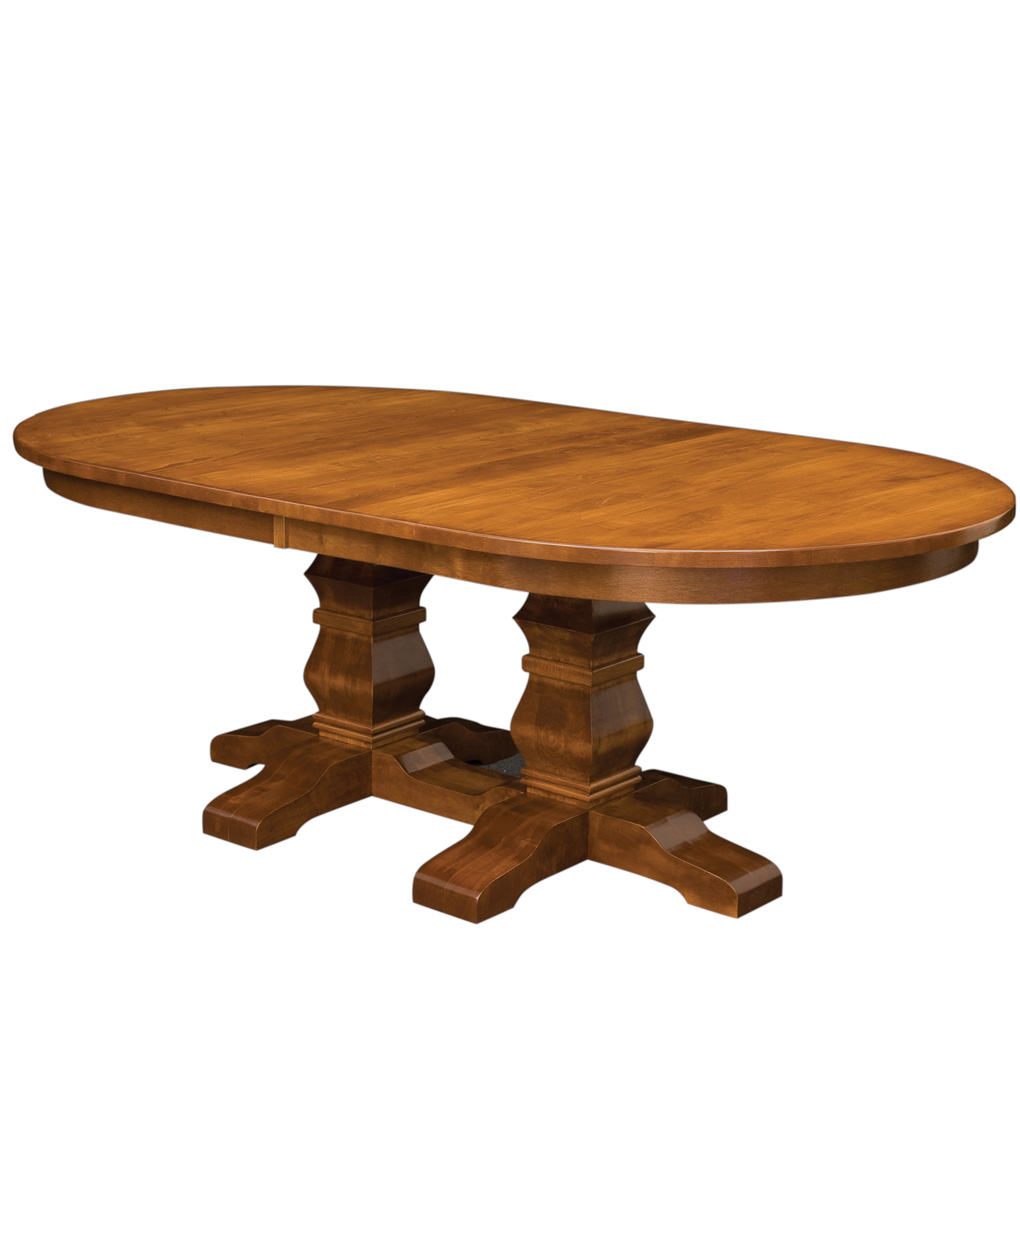 pedestal kitchen table affordable tables bradbury double amish direct furniture trestle